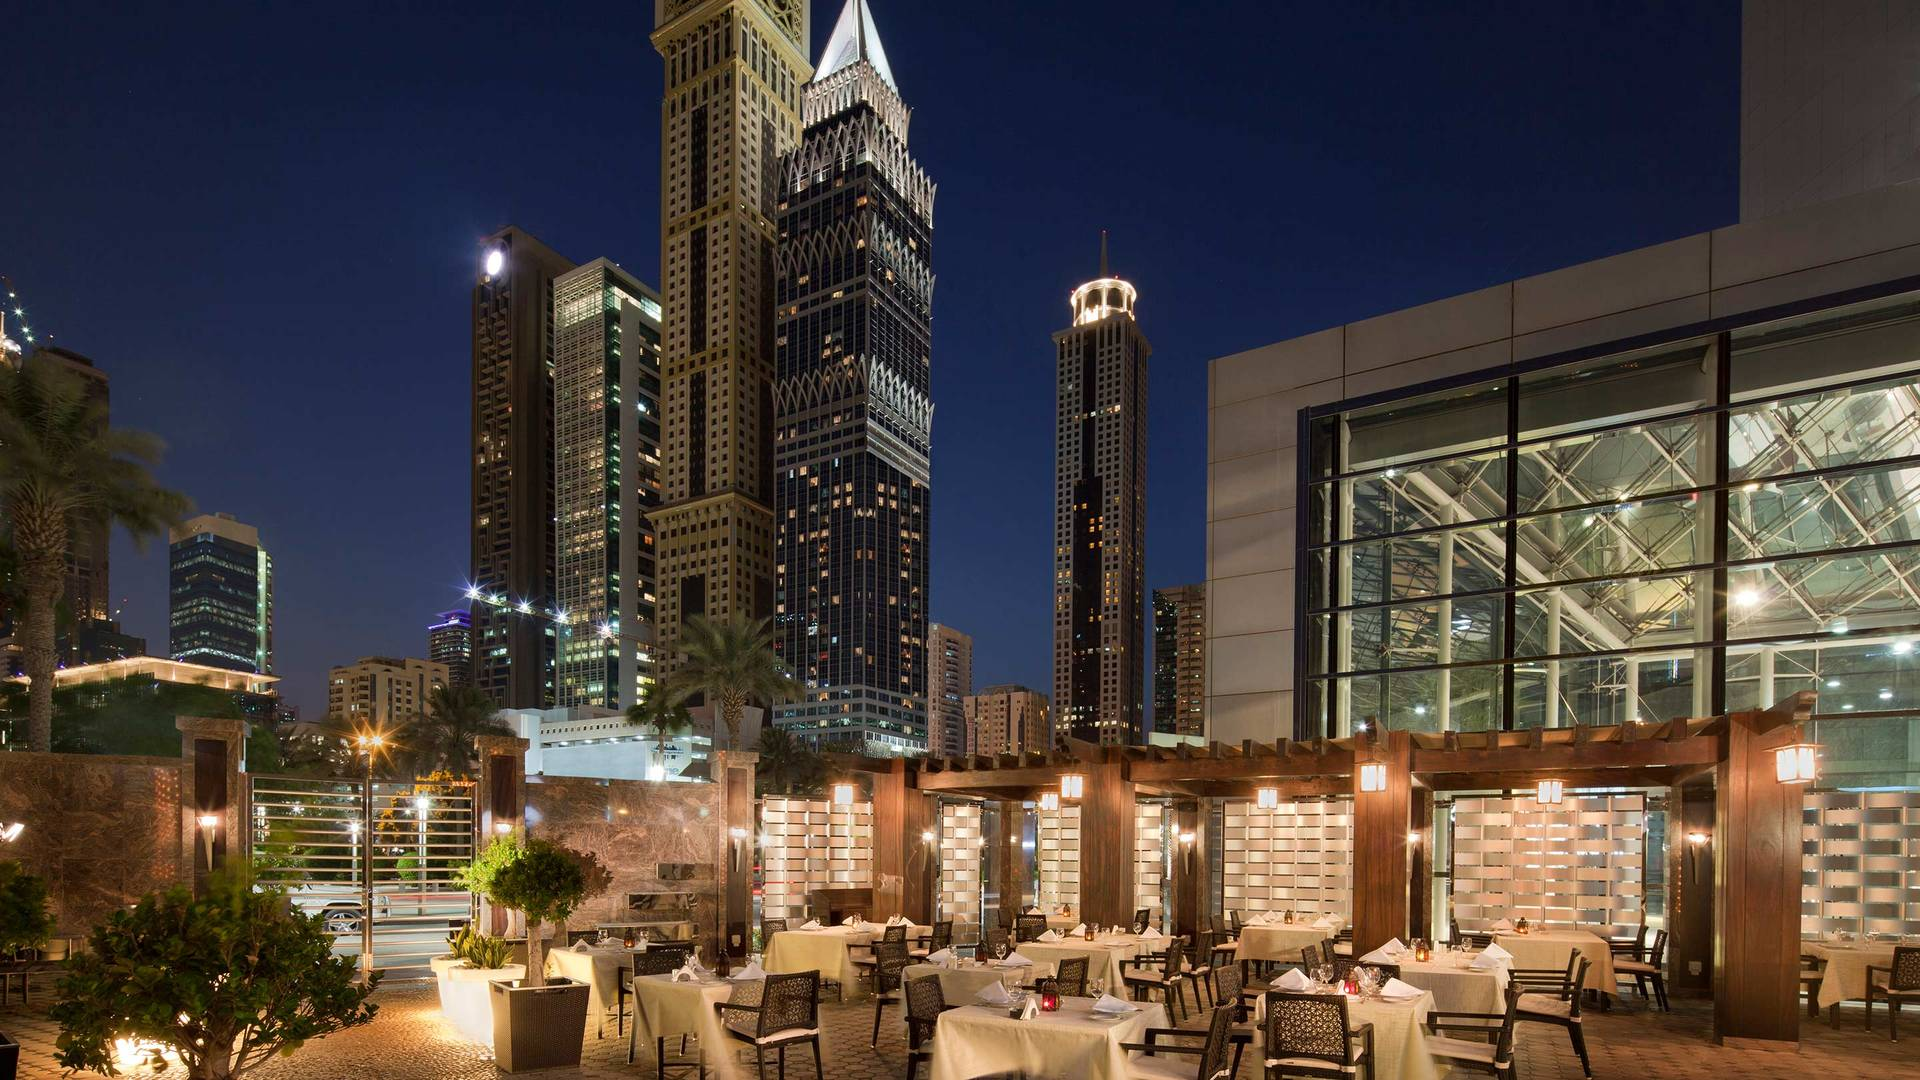 View of Al Nafoorah restaurant at Jumeirah Emirates Towers